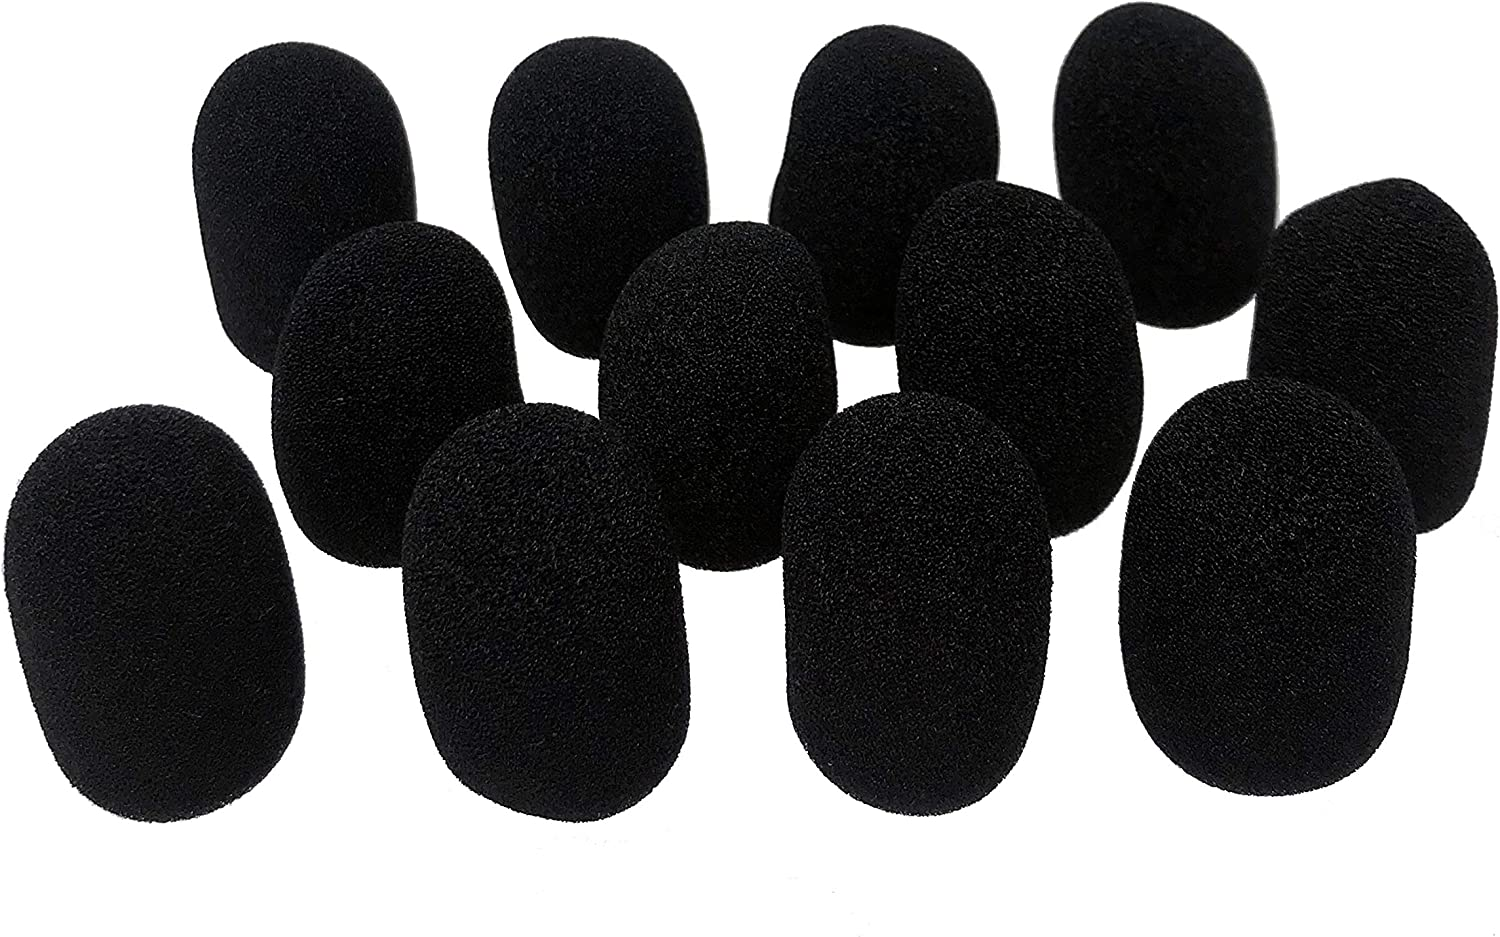 Tetra-Teknica XFFZDP-BLK Lapel Clearance SALE! Limited time! High quality Microphone Headset Windscreen